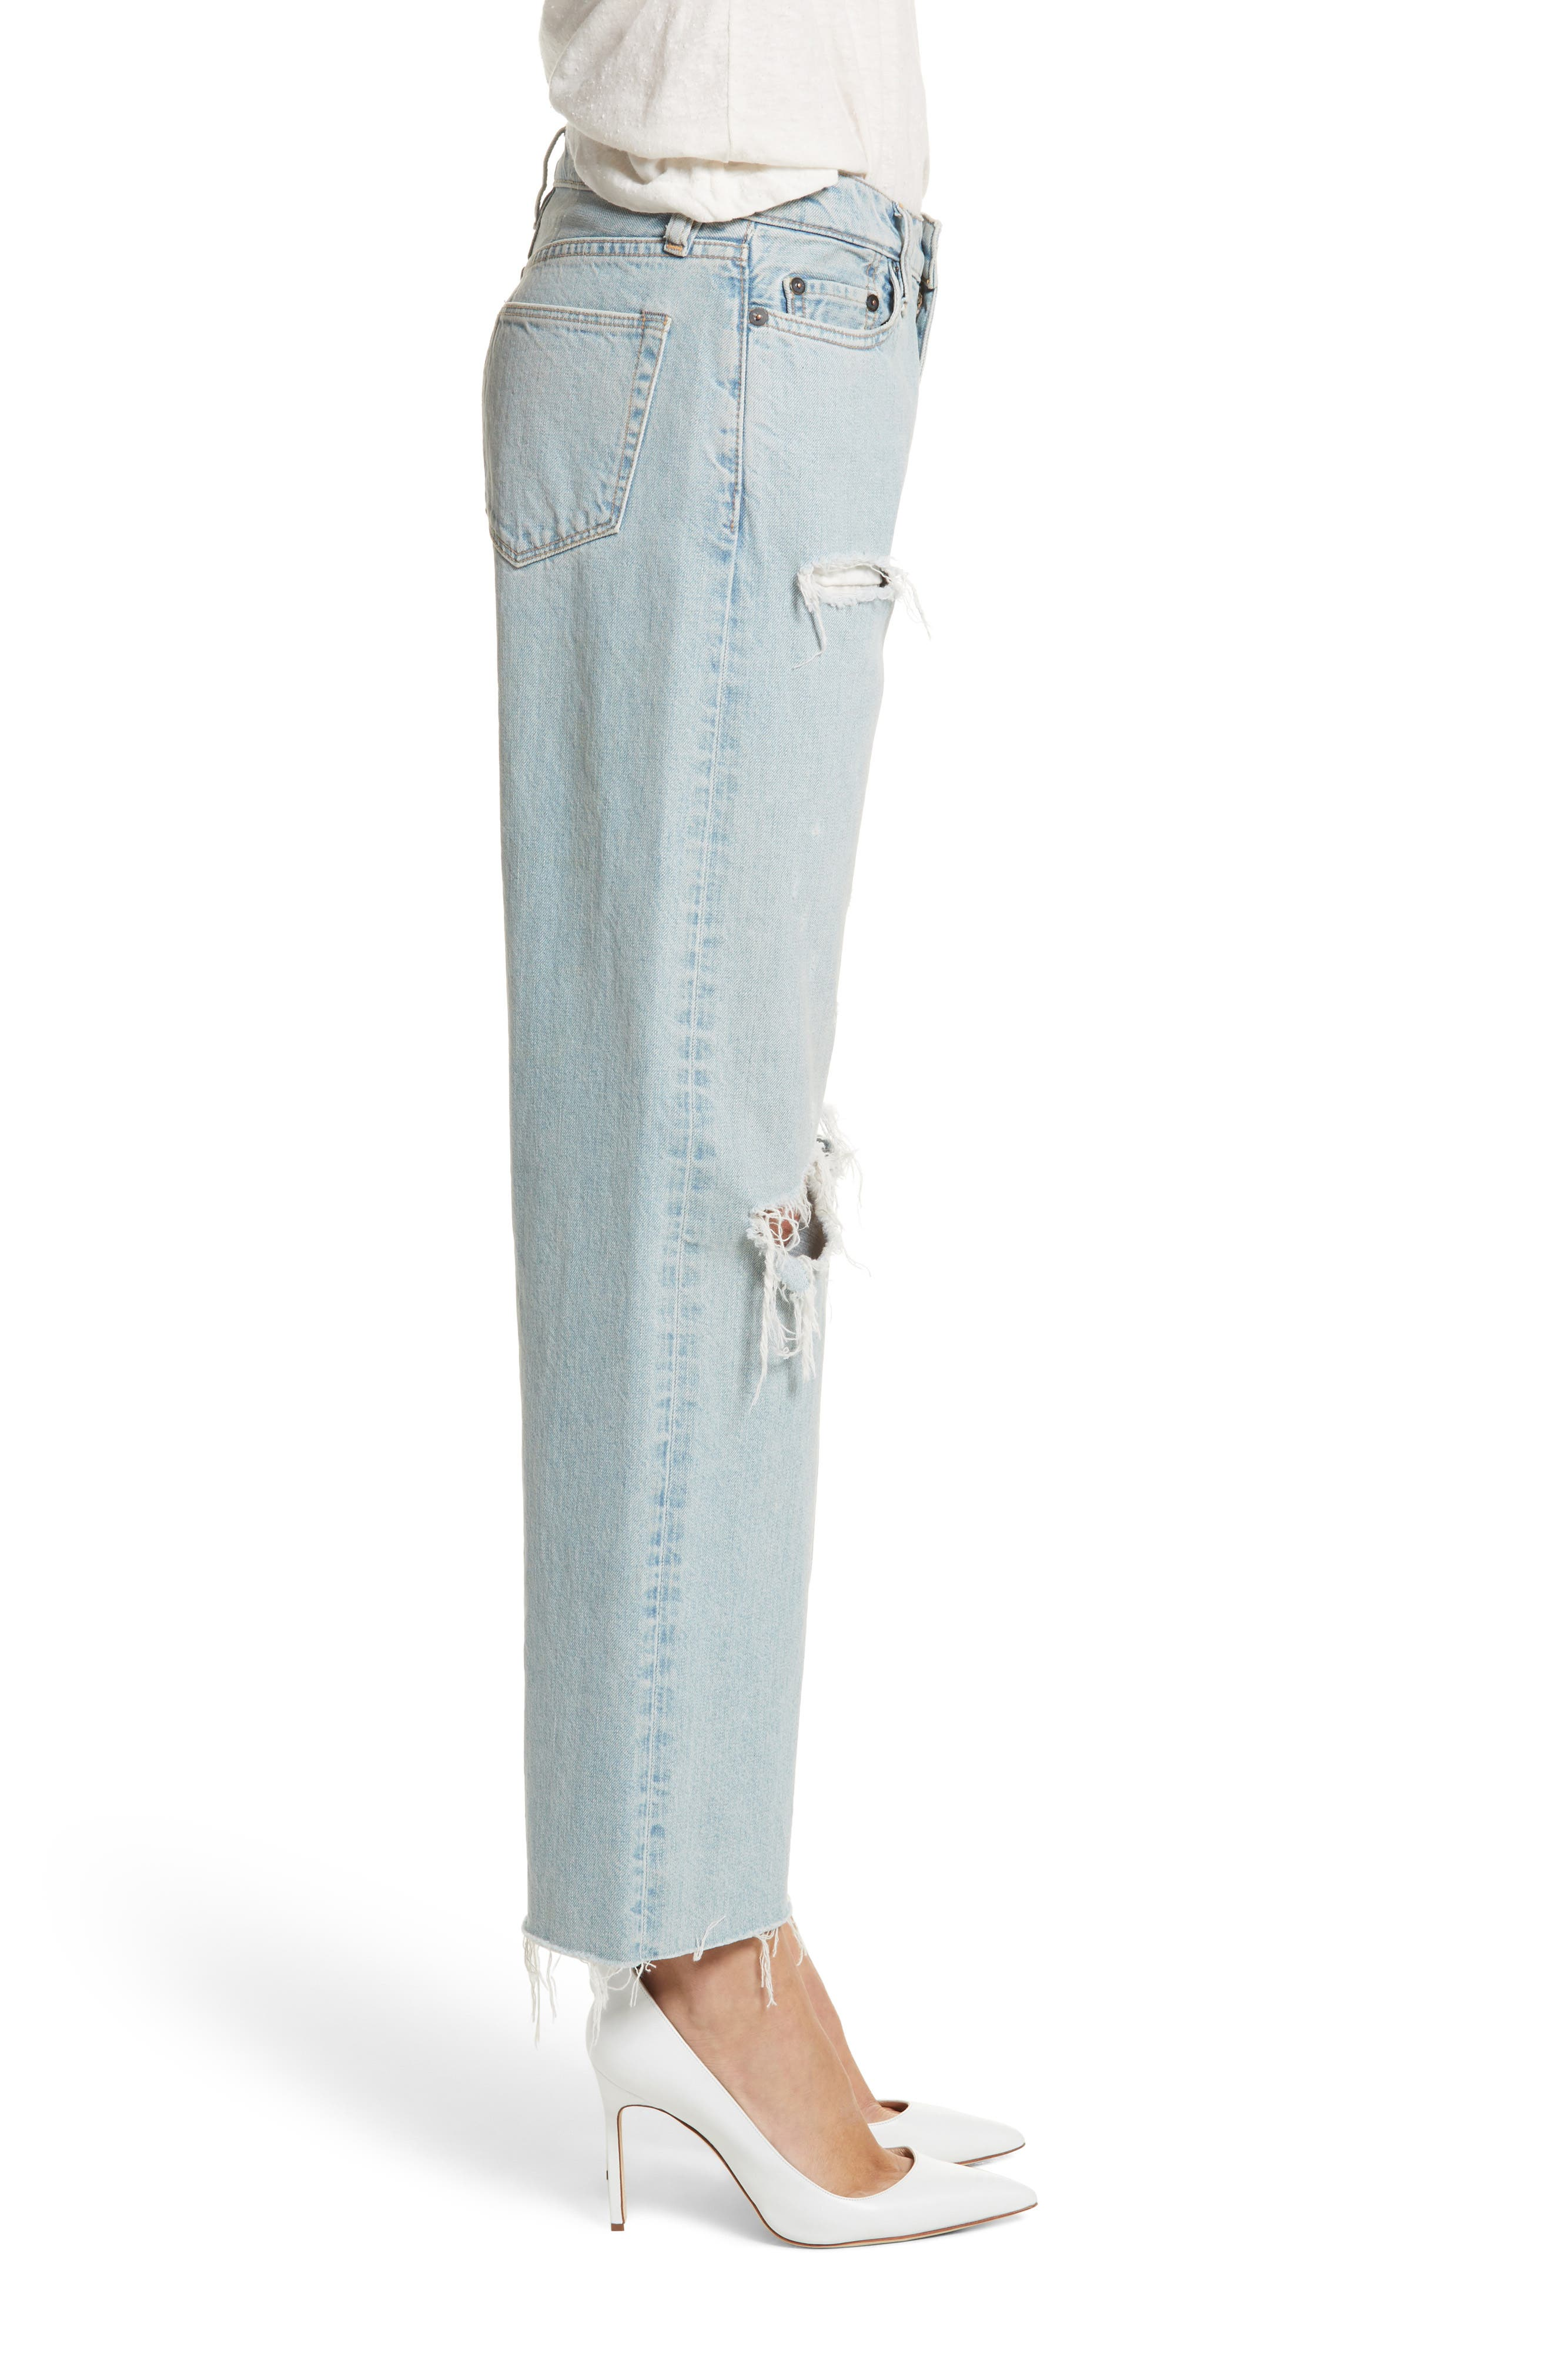 Tibbee Ripped Jeans,                             Alternate thumbnail 3, color,                             400